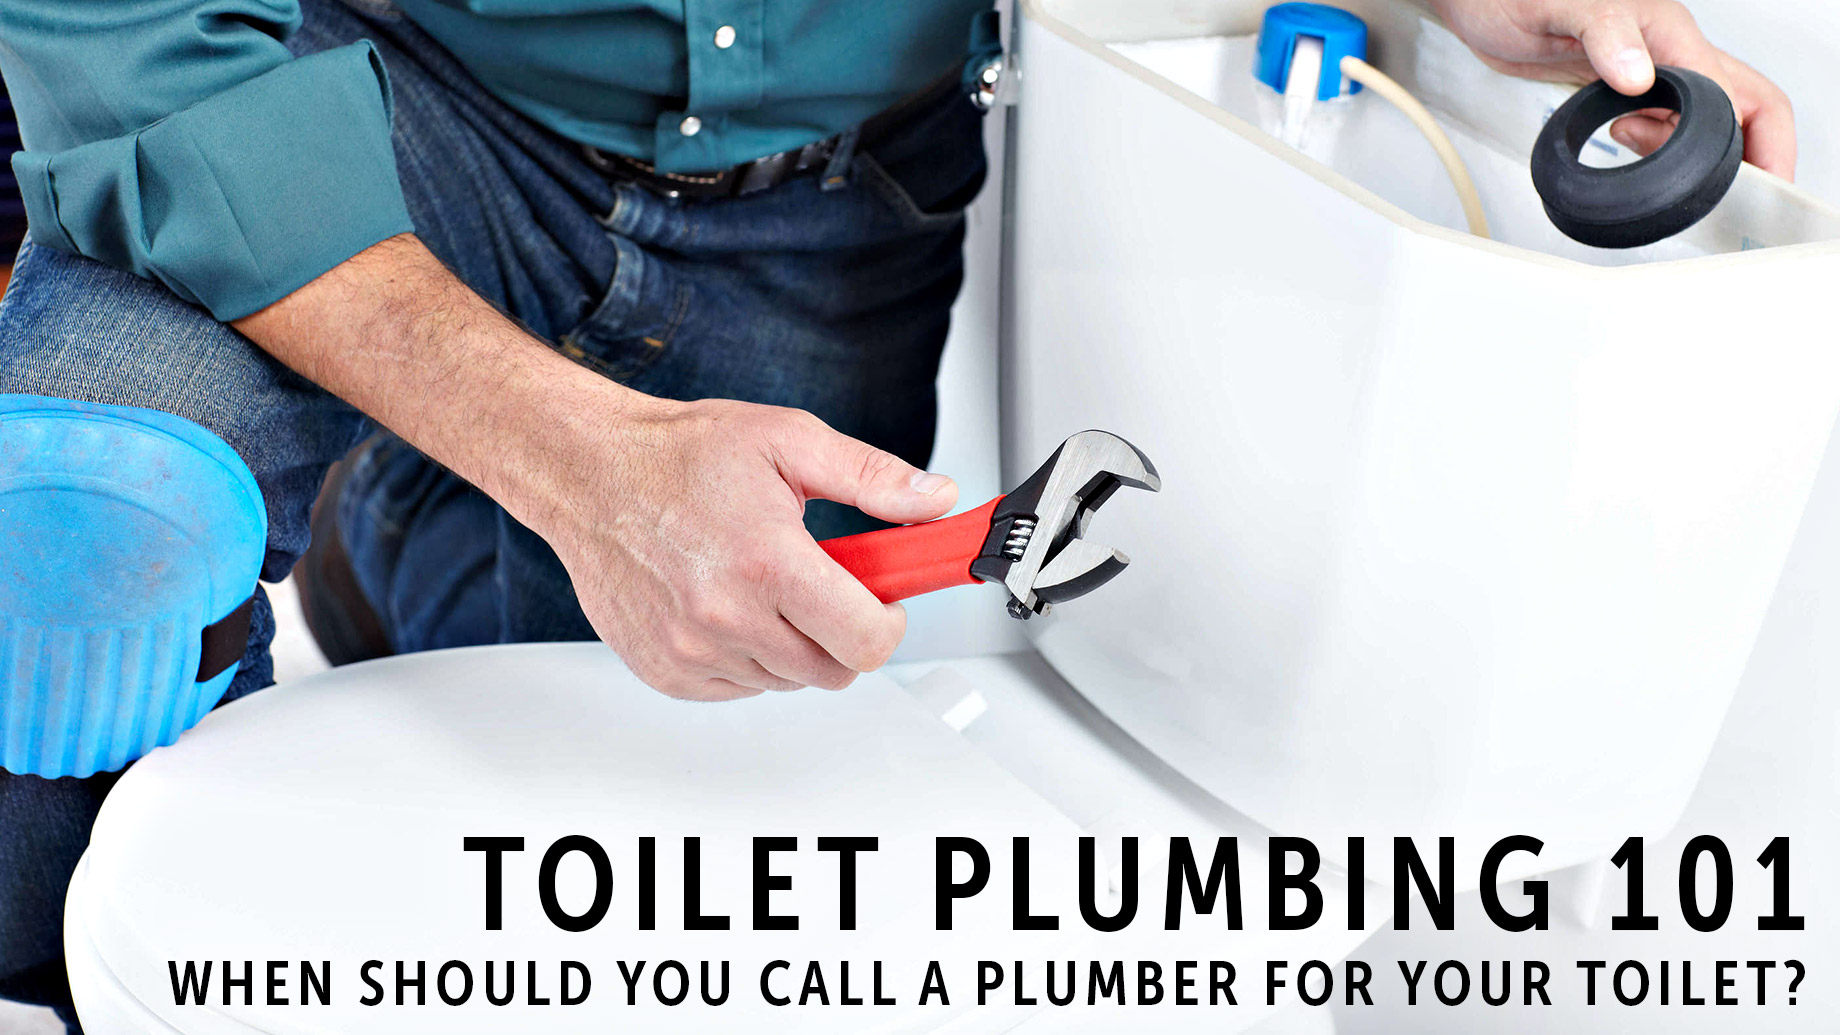 Toilet Plumbing 101 - When Should You Call a Plumber for Your Toilet?